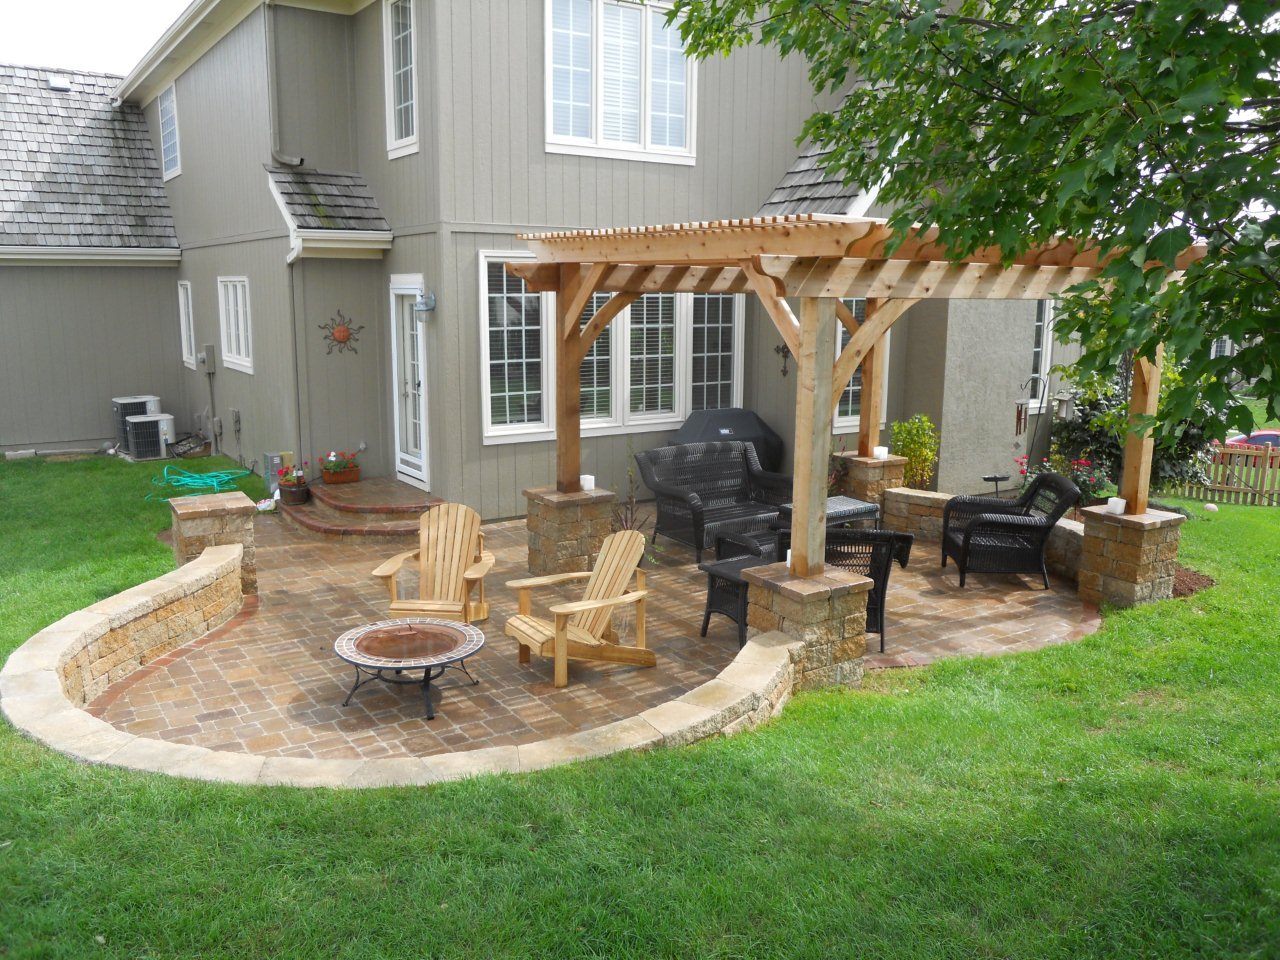 small backyard pergola ideas ztil news in with 10 awesome ideas how to build backyard pergola ideas from Simphome.com